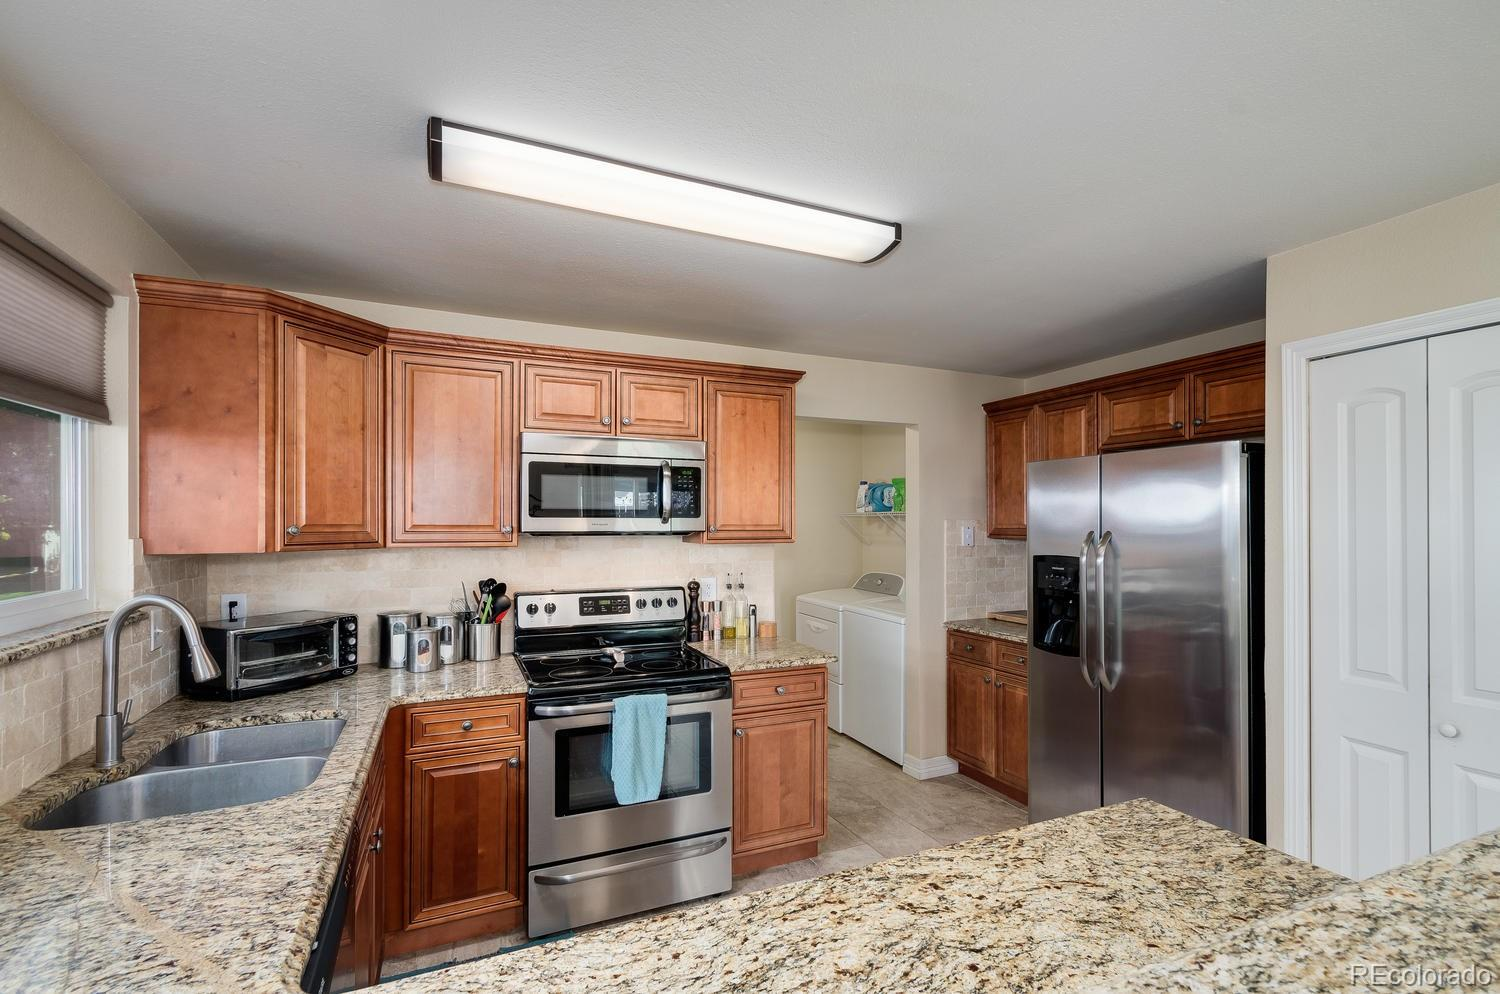 MLS# 2006537 - 12 - 5629 S Youngfield Way, Littleton, CO 80127